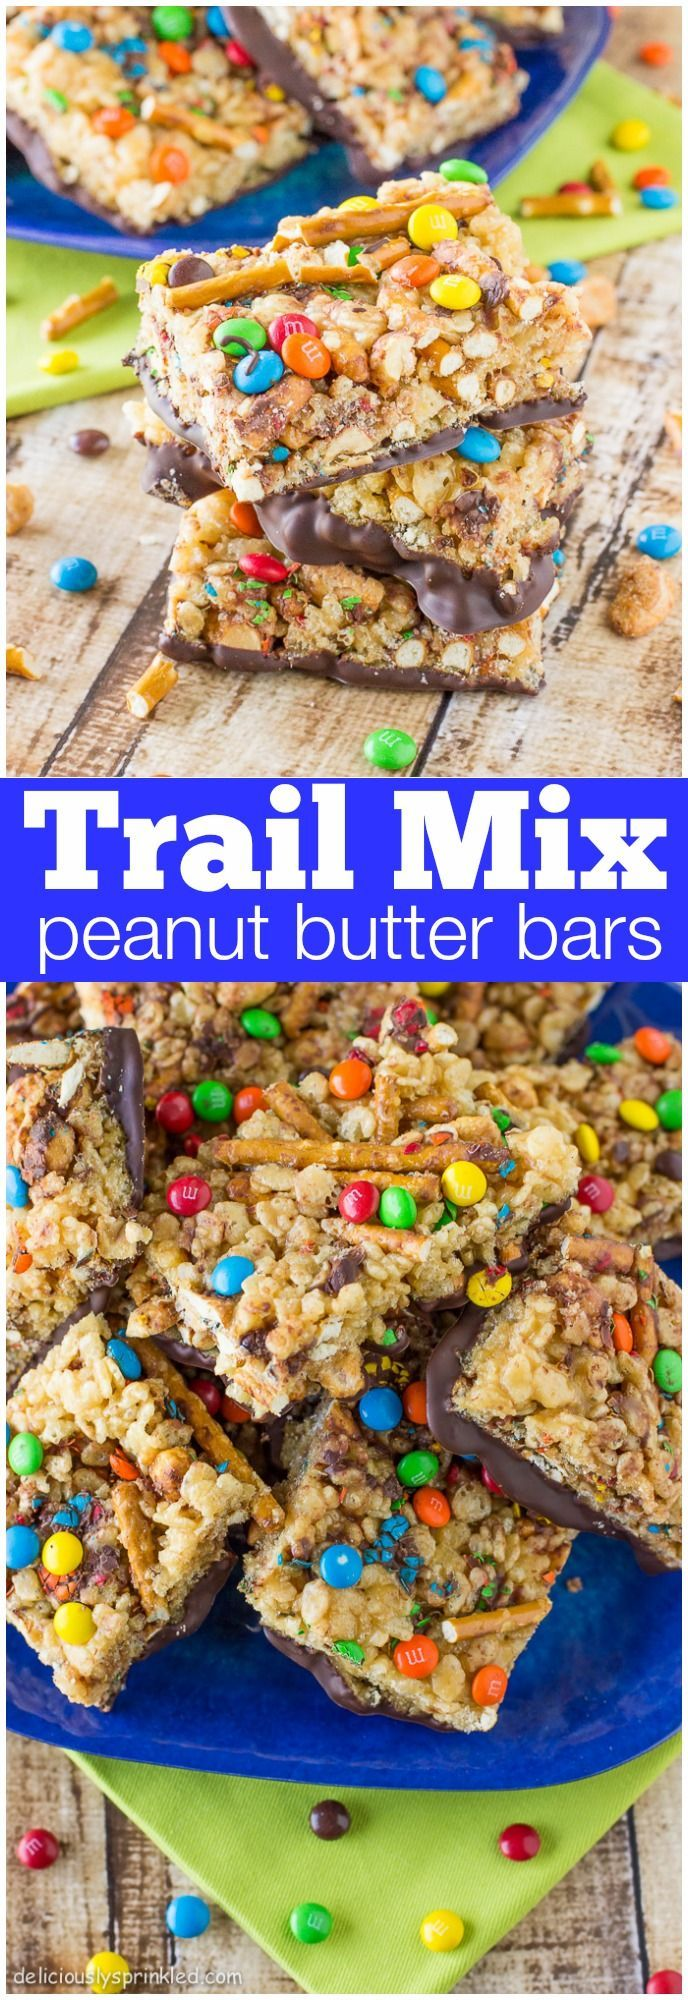 Trail Mix Peanut Butter Bars Recipe- deliciouslysprinkled.com